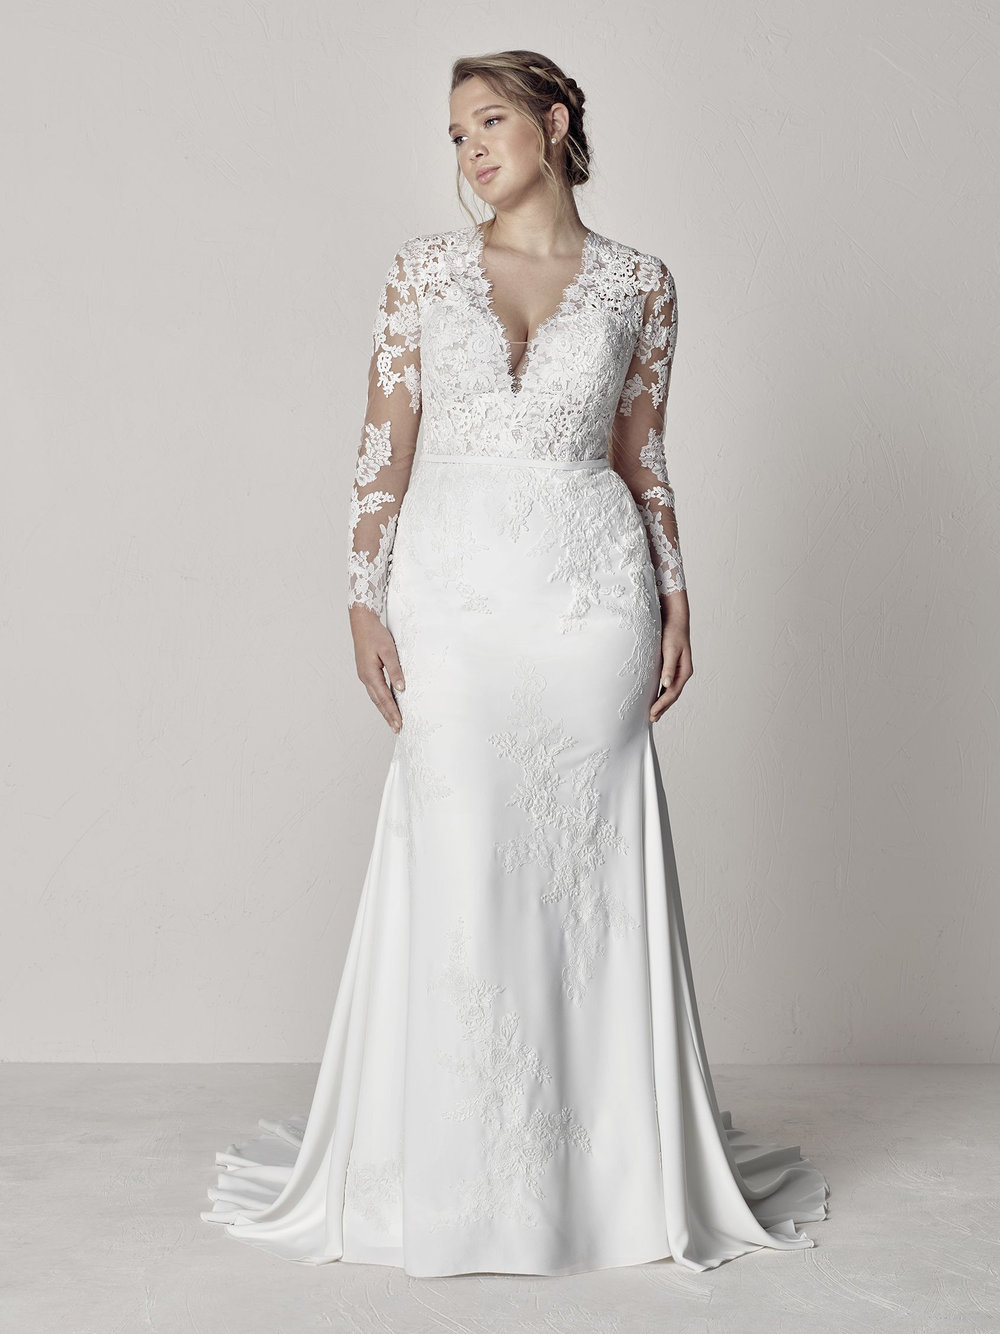 PronoviasBridal-BridesbyYoung-PlusSizeWeddingDress-Eva.jpg